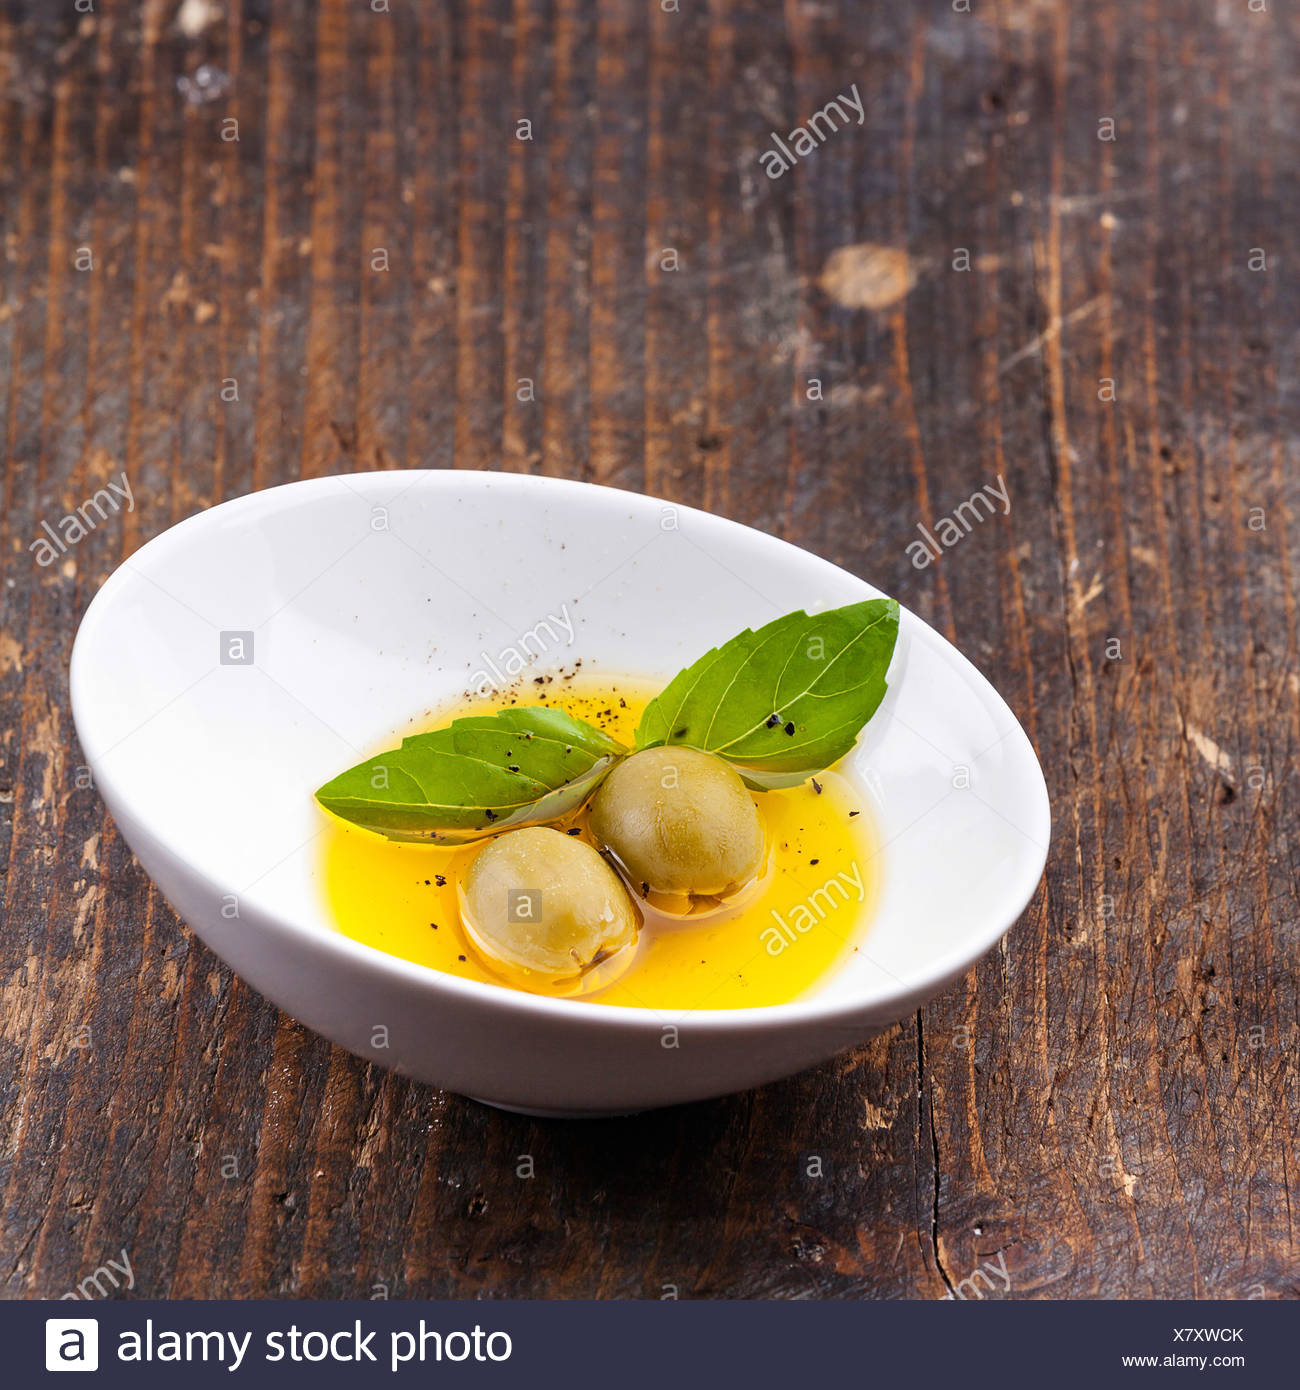 Olives and olive oil in bowl - Stock Image